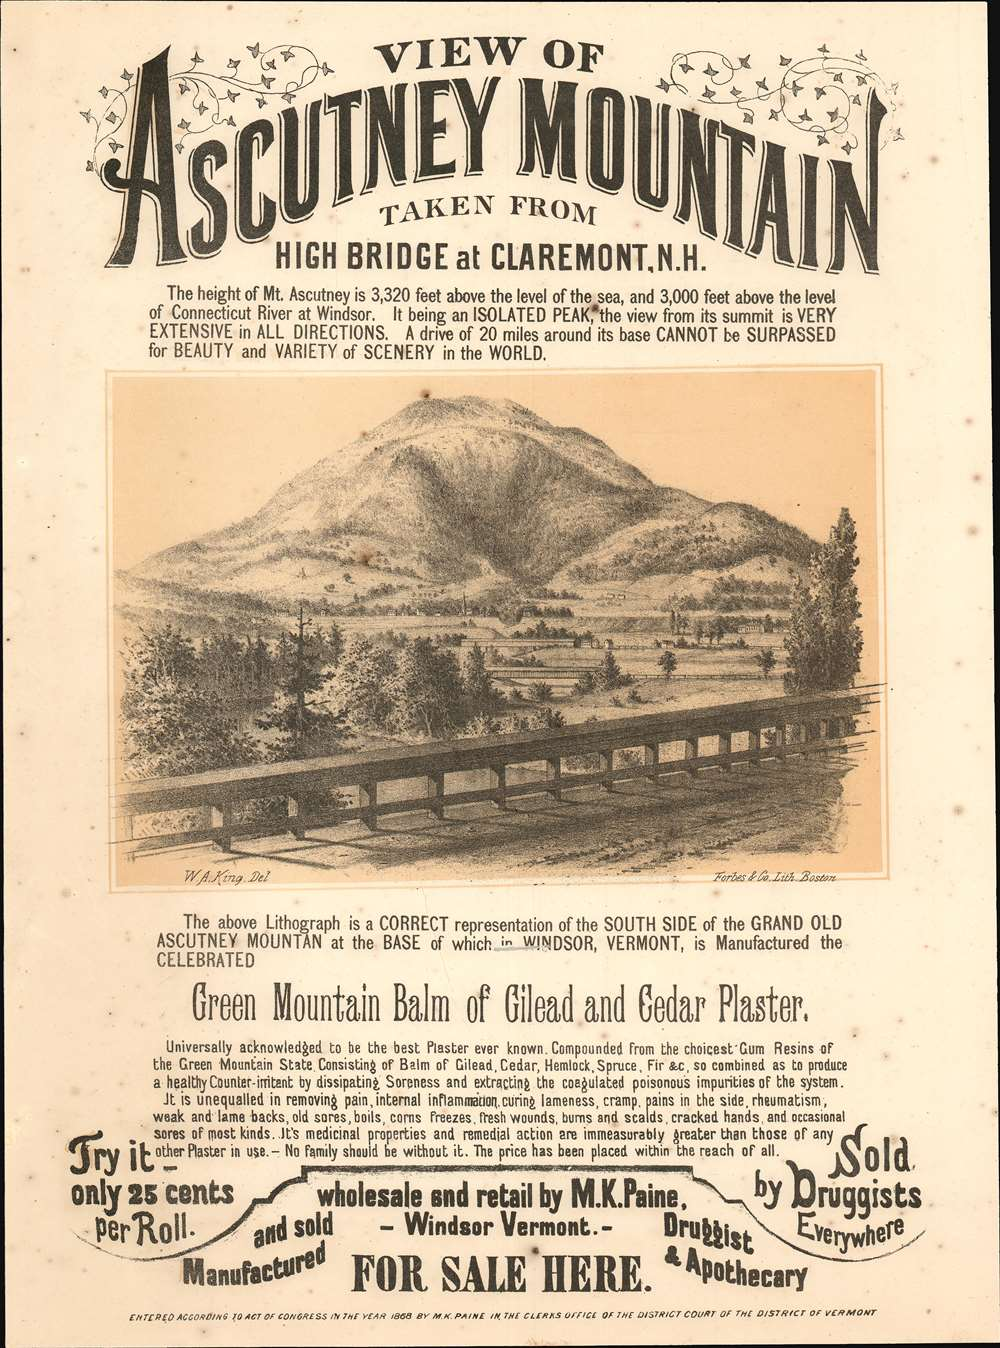 1868 Paine Broadside View of Ascutney Mountain, Vermont